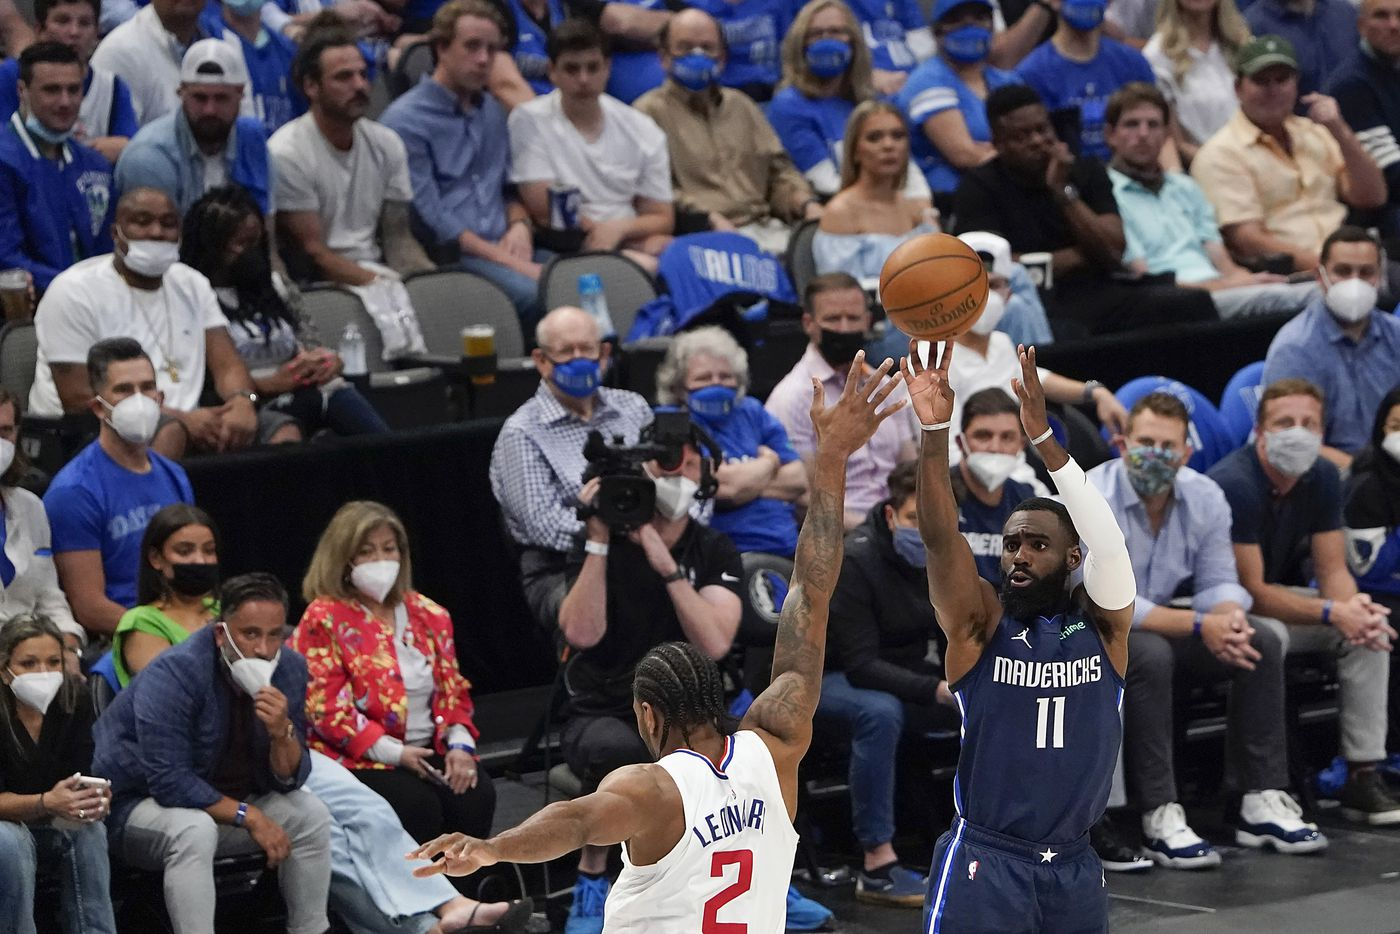 Dallas Mavericks forward Tim Hardaway Jr. (11) shoots over LA Clippers forward Kawhi Leonard (2) during the second quarter of an NBA playoff basketball game at American Airlines Center on Friday, May 28, 2021, in Dallas.